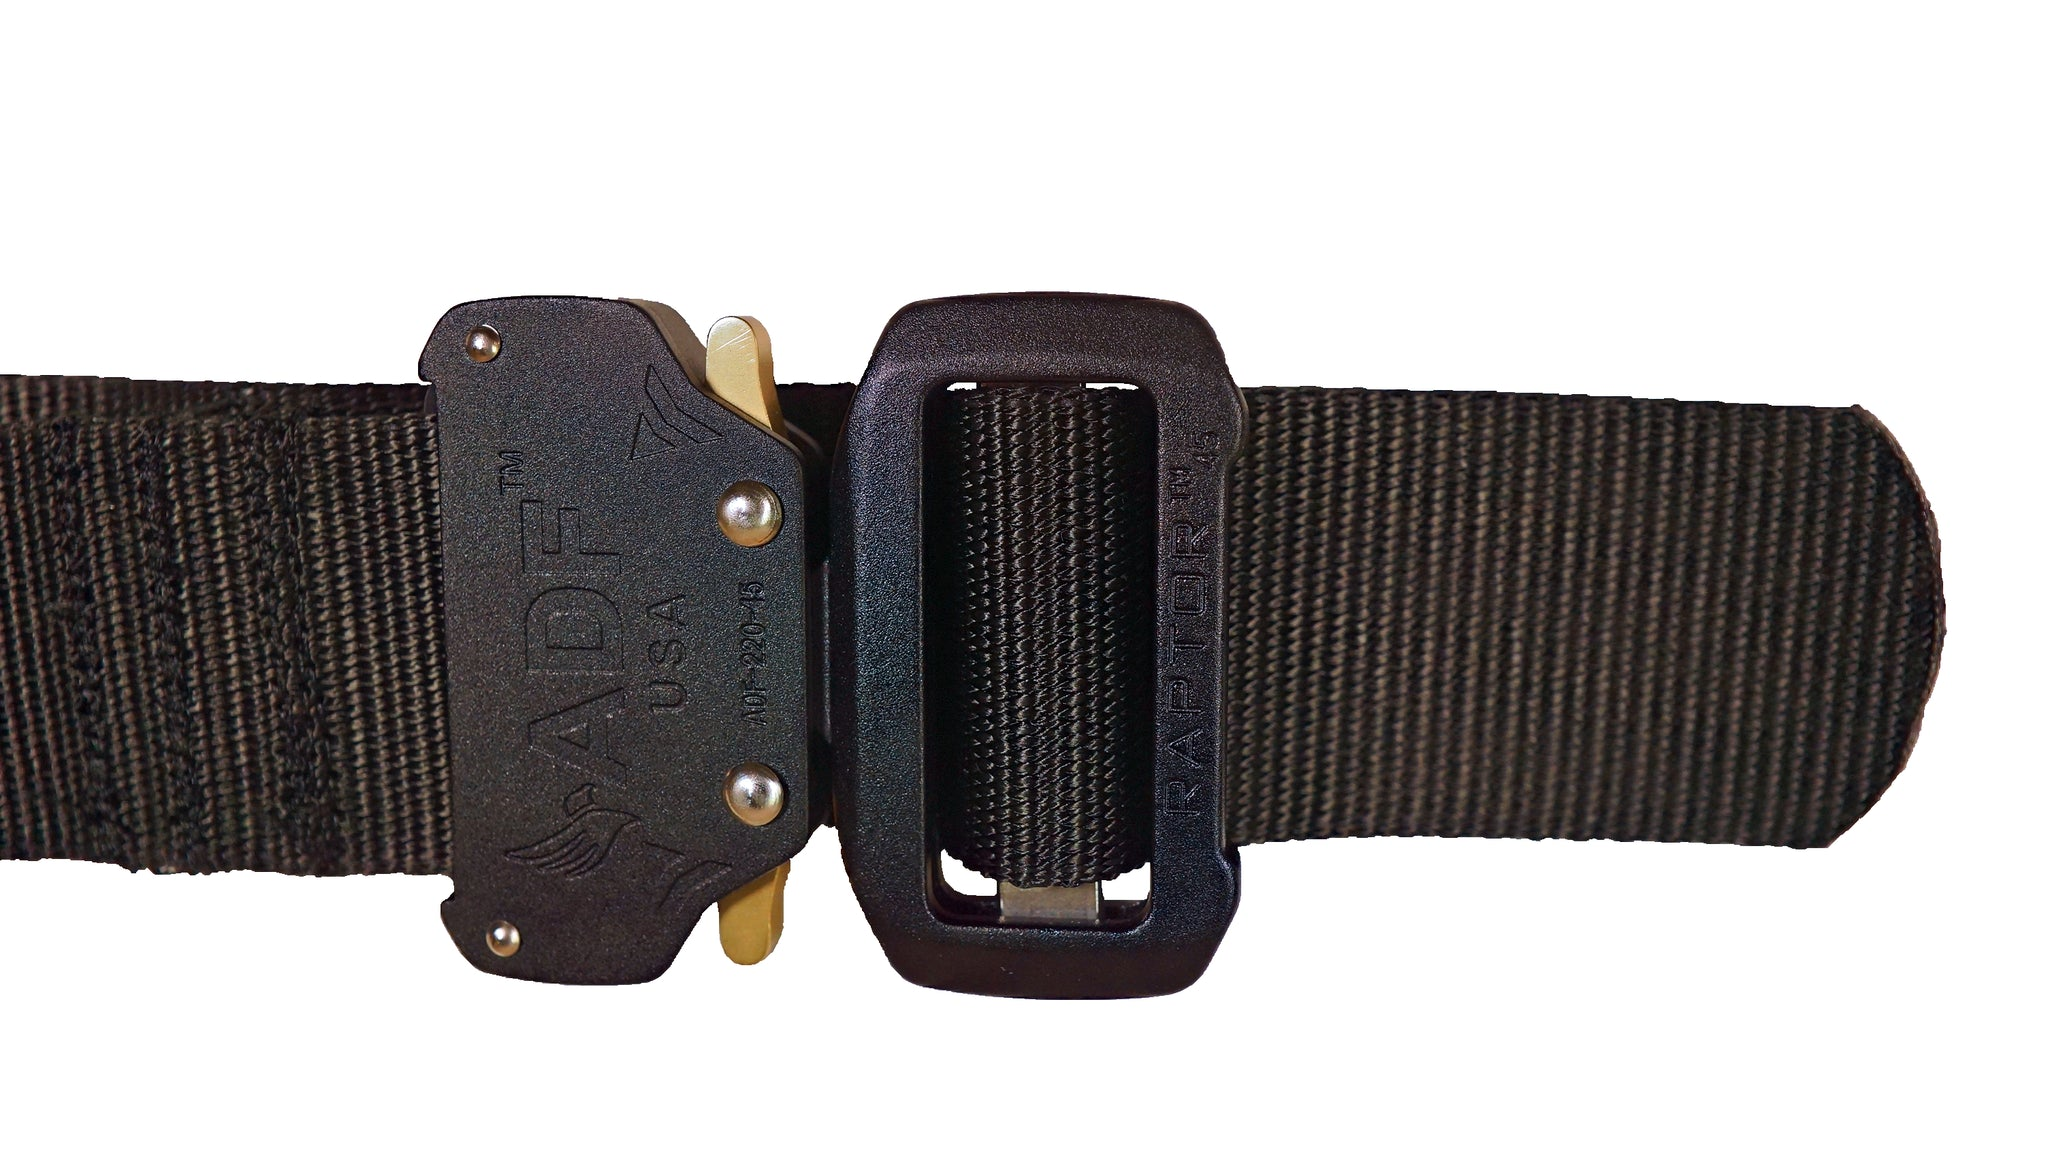 Black DBF Belt: Zoomed-in view of Raptor buckle with rivets and quick-release latches